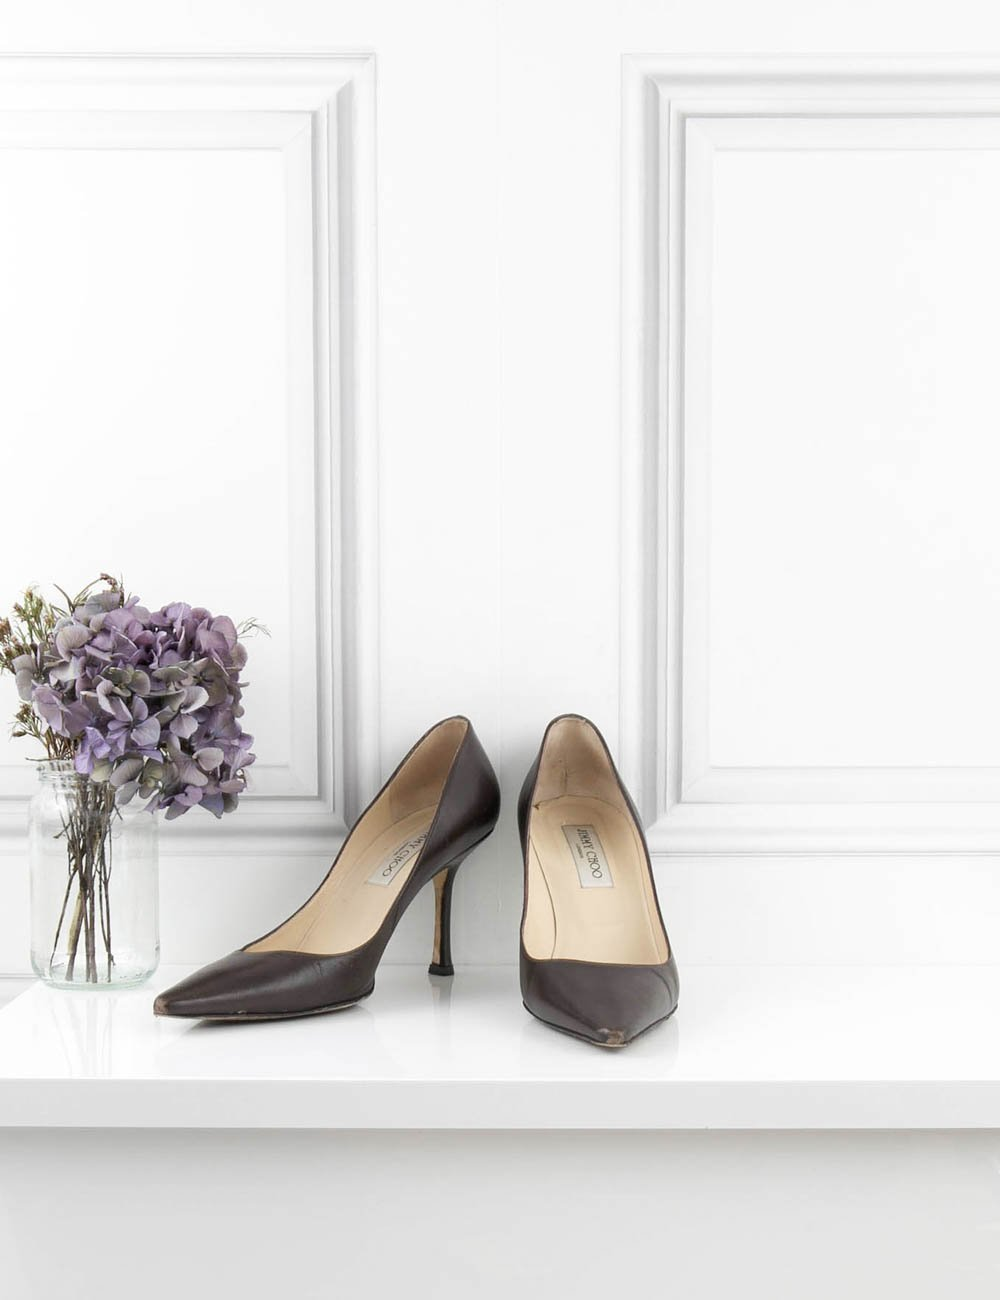 JIMMY CHOO SHOES Classic pointy Pump brown 6UK- My Wardrobe Mistakes